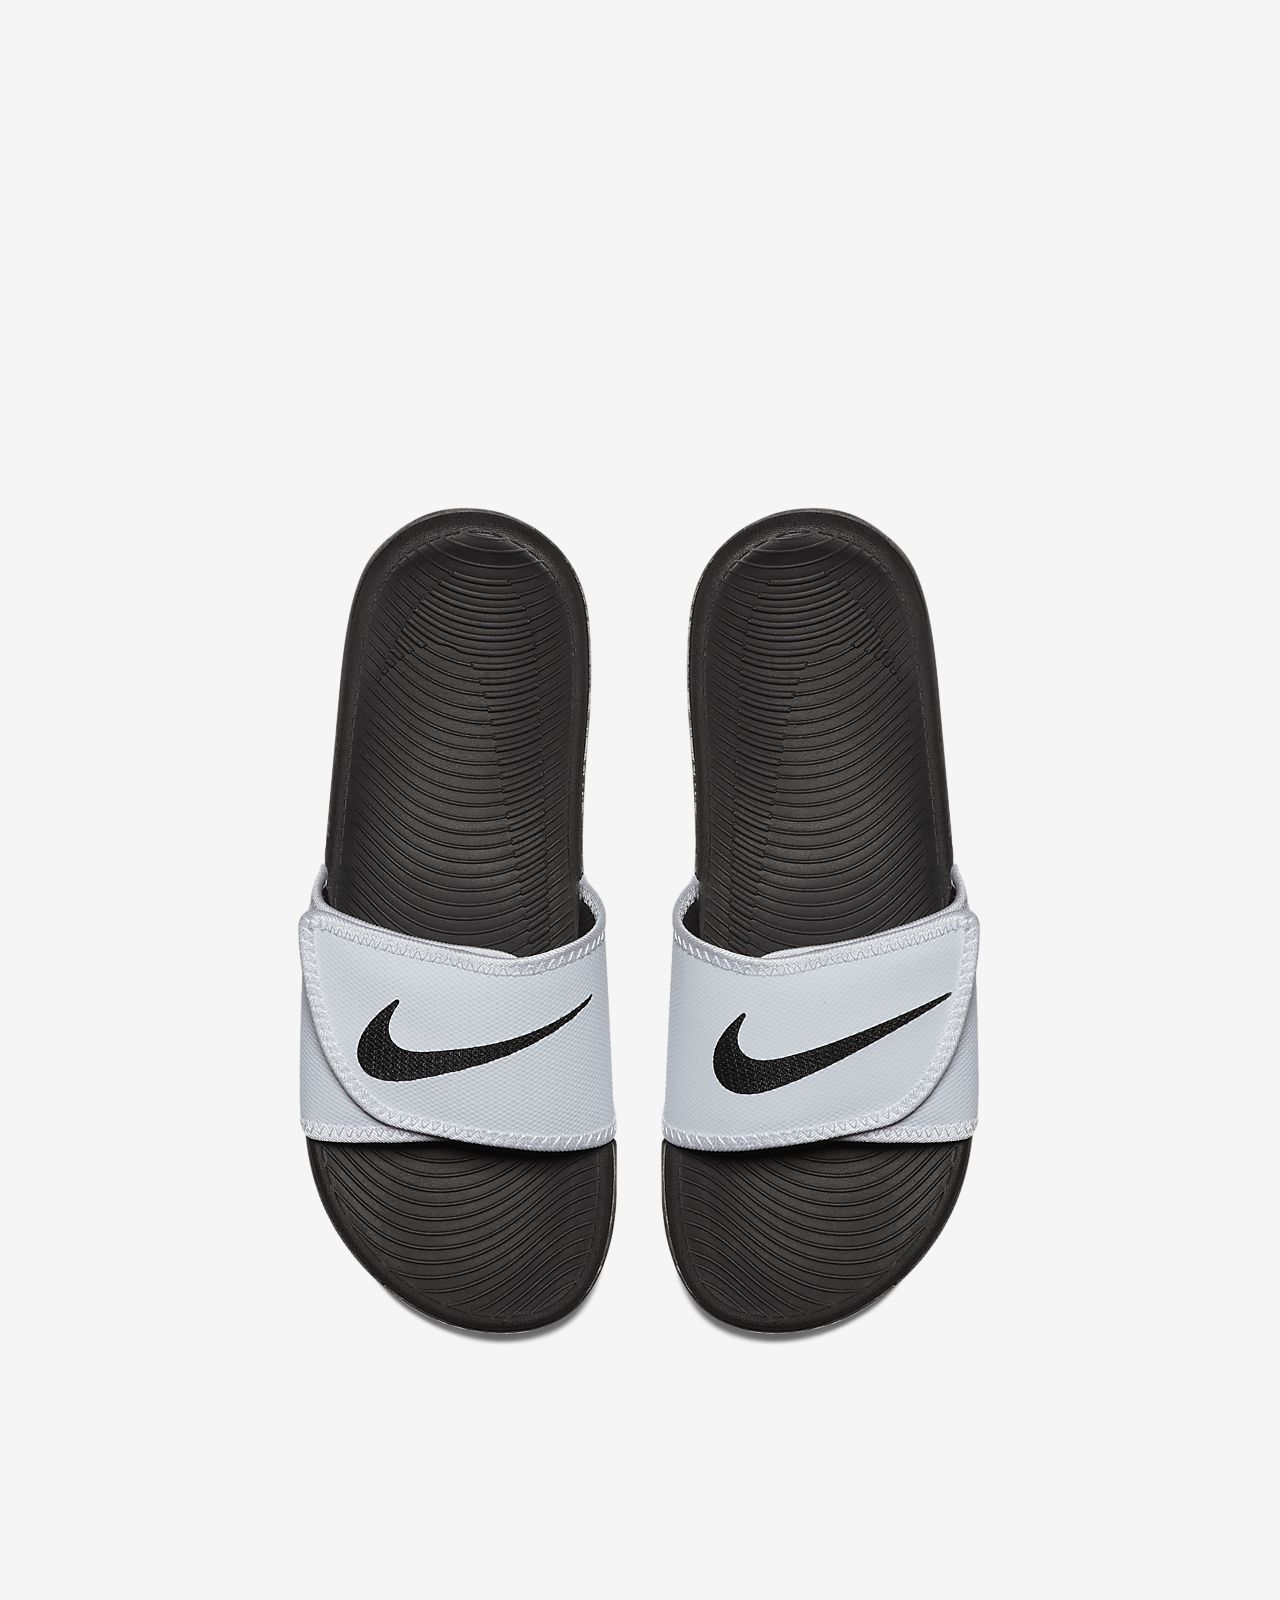 4751d6b5e368 Nike Kawa Men s Adjustable Slide. Nike.com